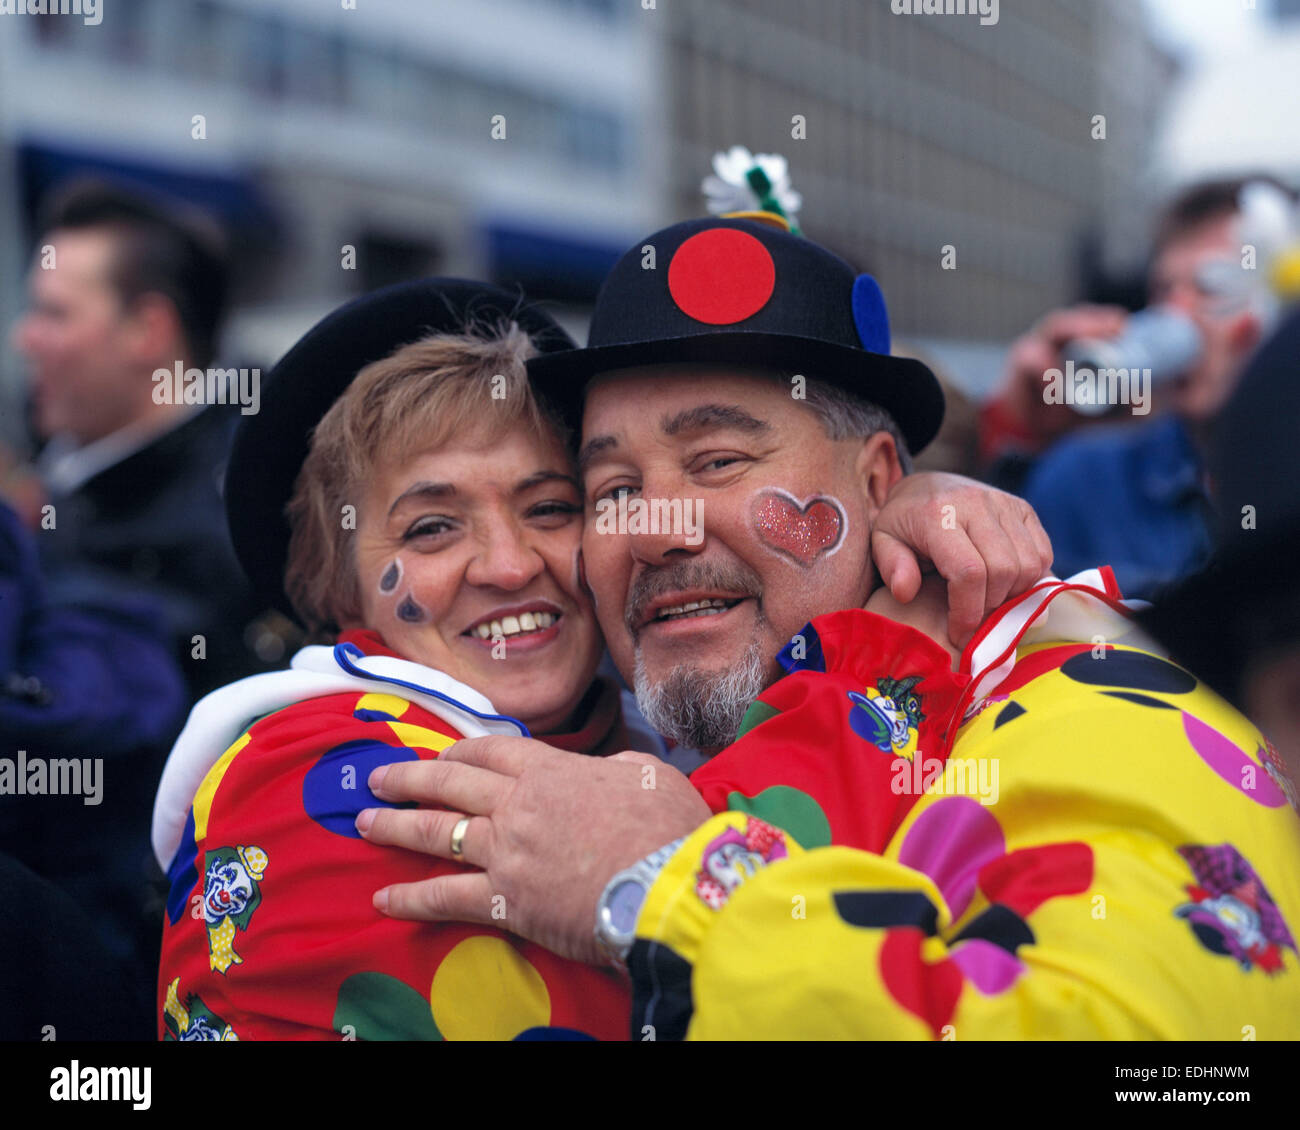 Rhenish carnival, street carnival, couple, woman 40 to 50 years, man 50 to 60 years, costuming, face painting, hats, - Stock Image